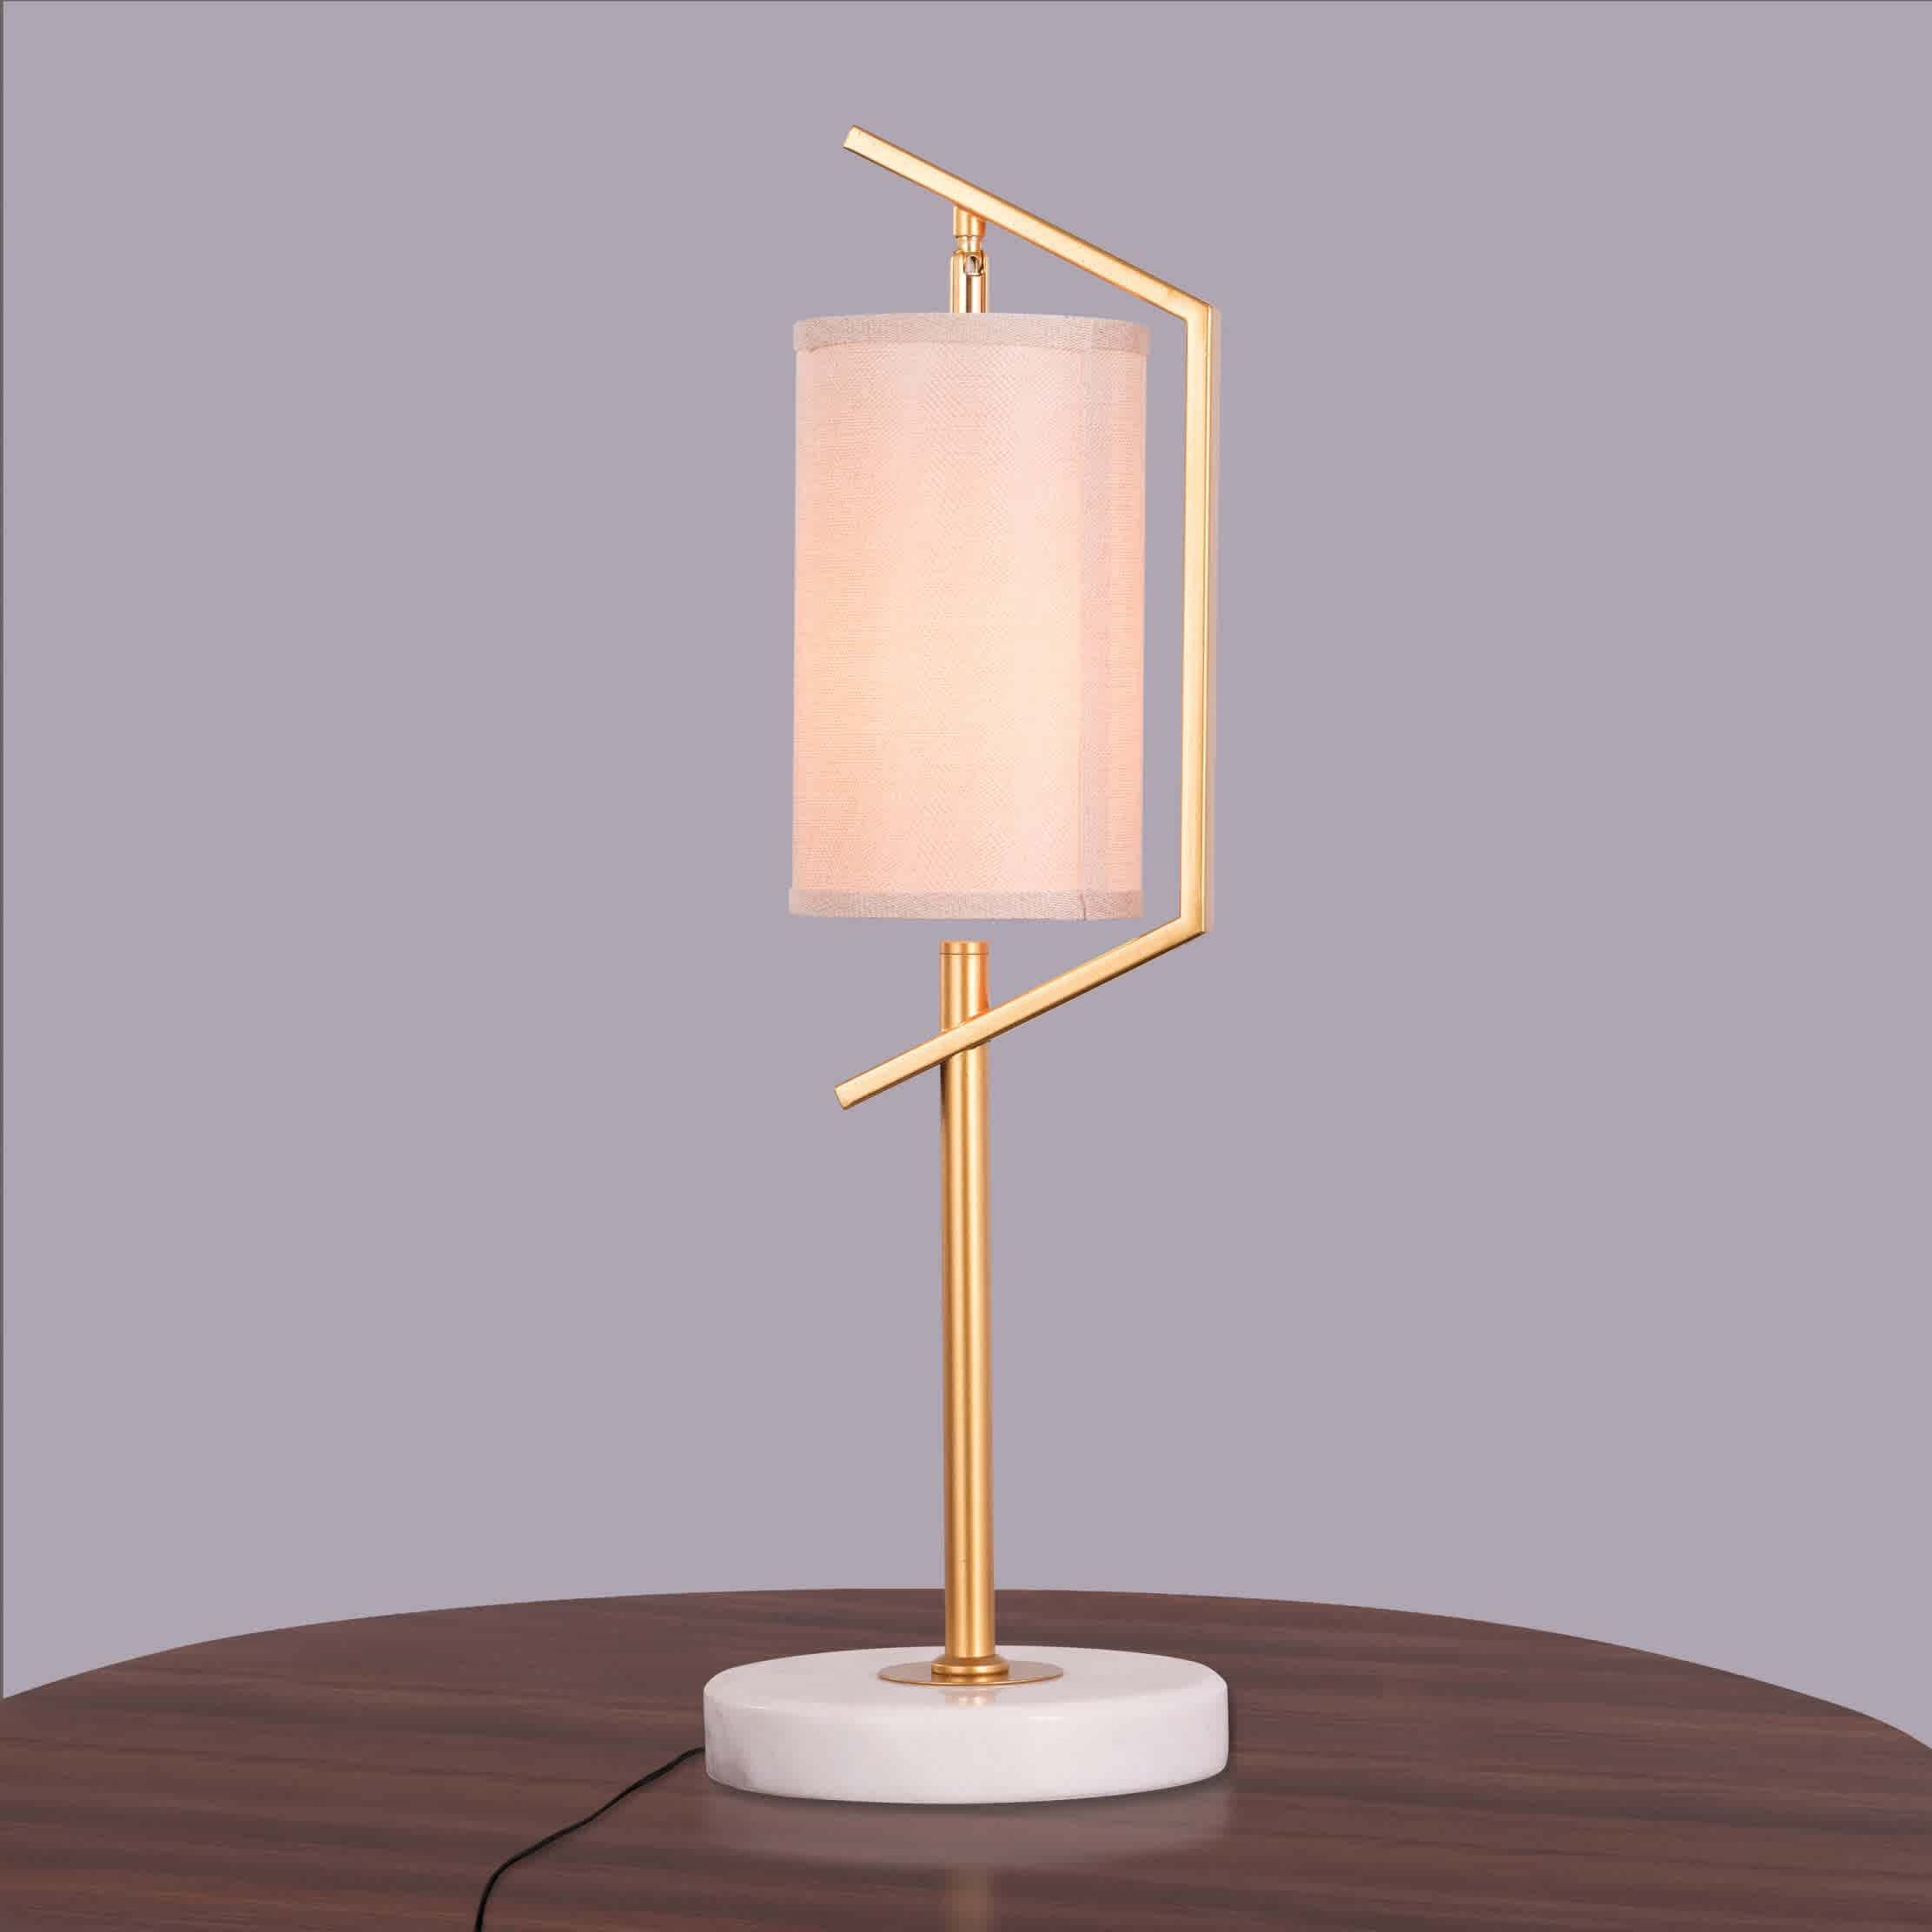 Effortless Table Lamp Buy Premium Table Lamps Online In India At A Great Price From India S Top Home Decorative Lighting B Table Lamp Lamp Table Lamps Online